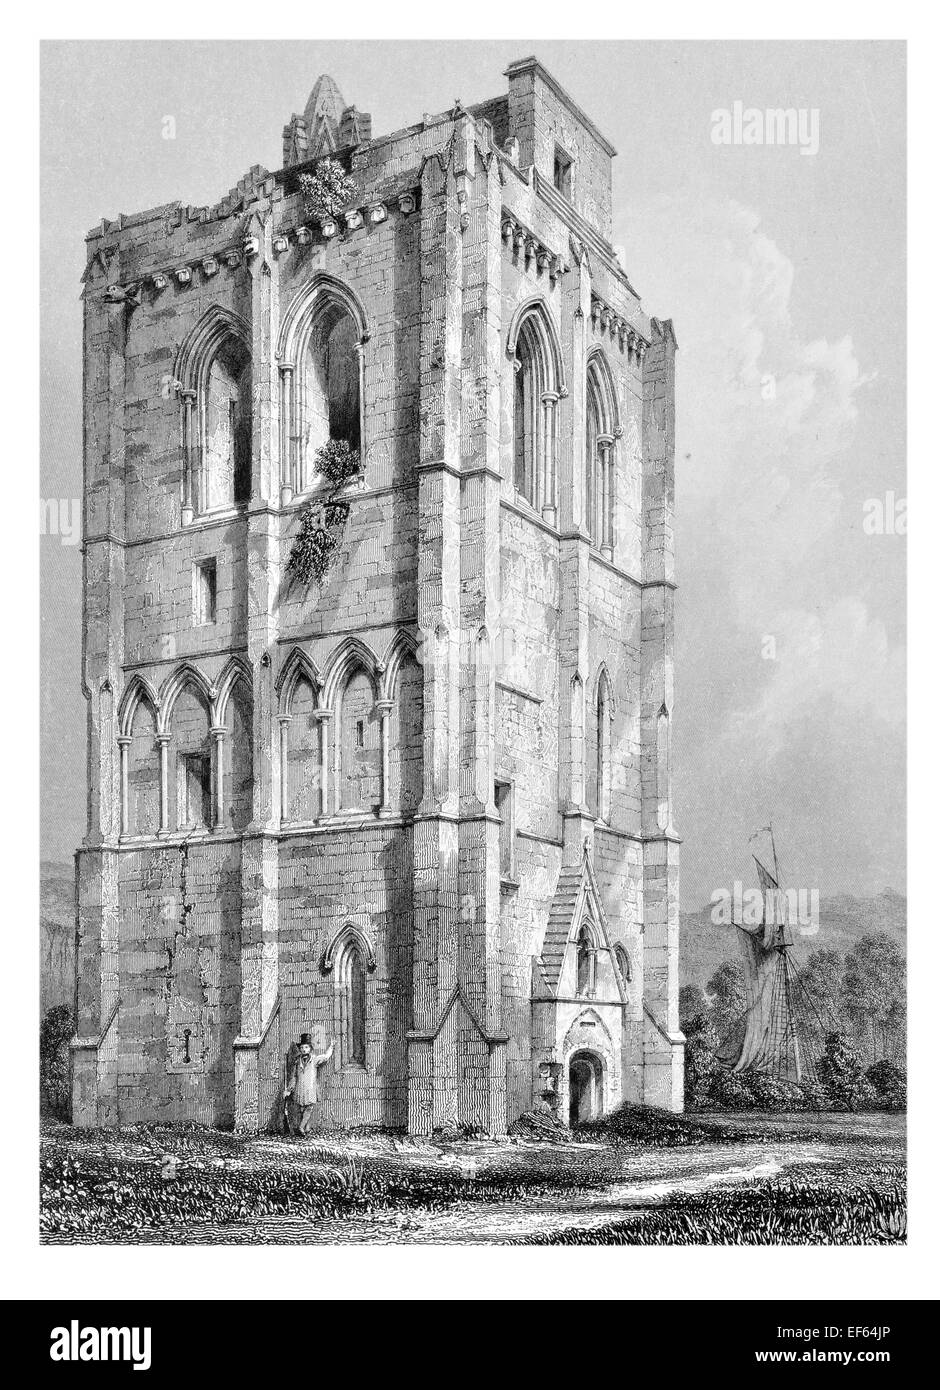 1852 Cambuskenneth  Camas Choinnich Tower Abbey, City of Stirling, Scotland - Stock Image